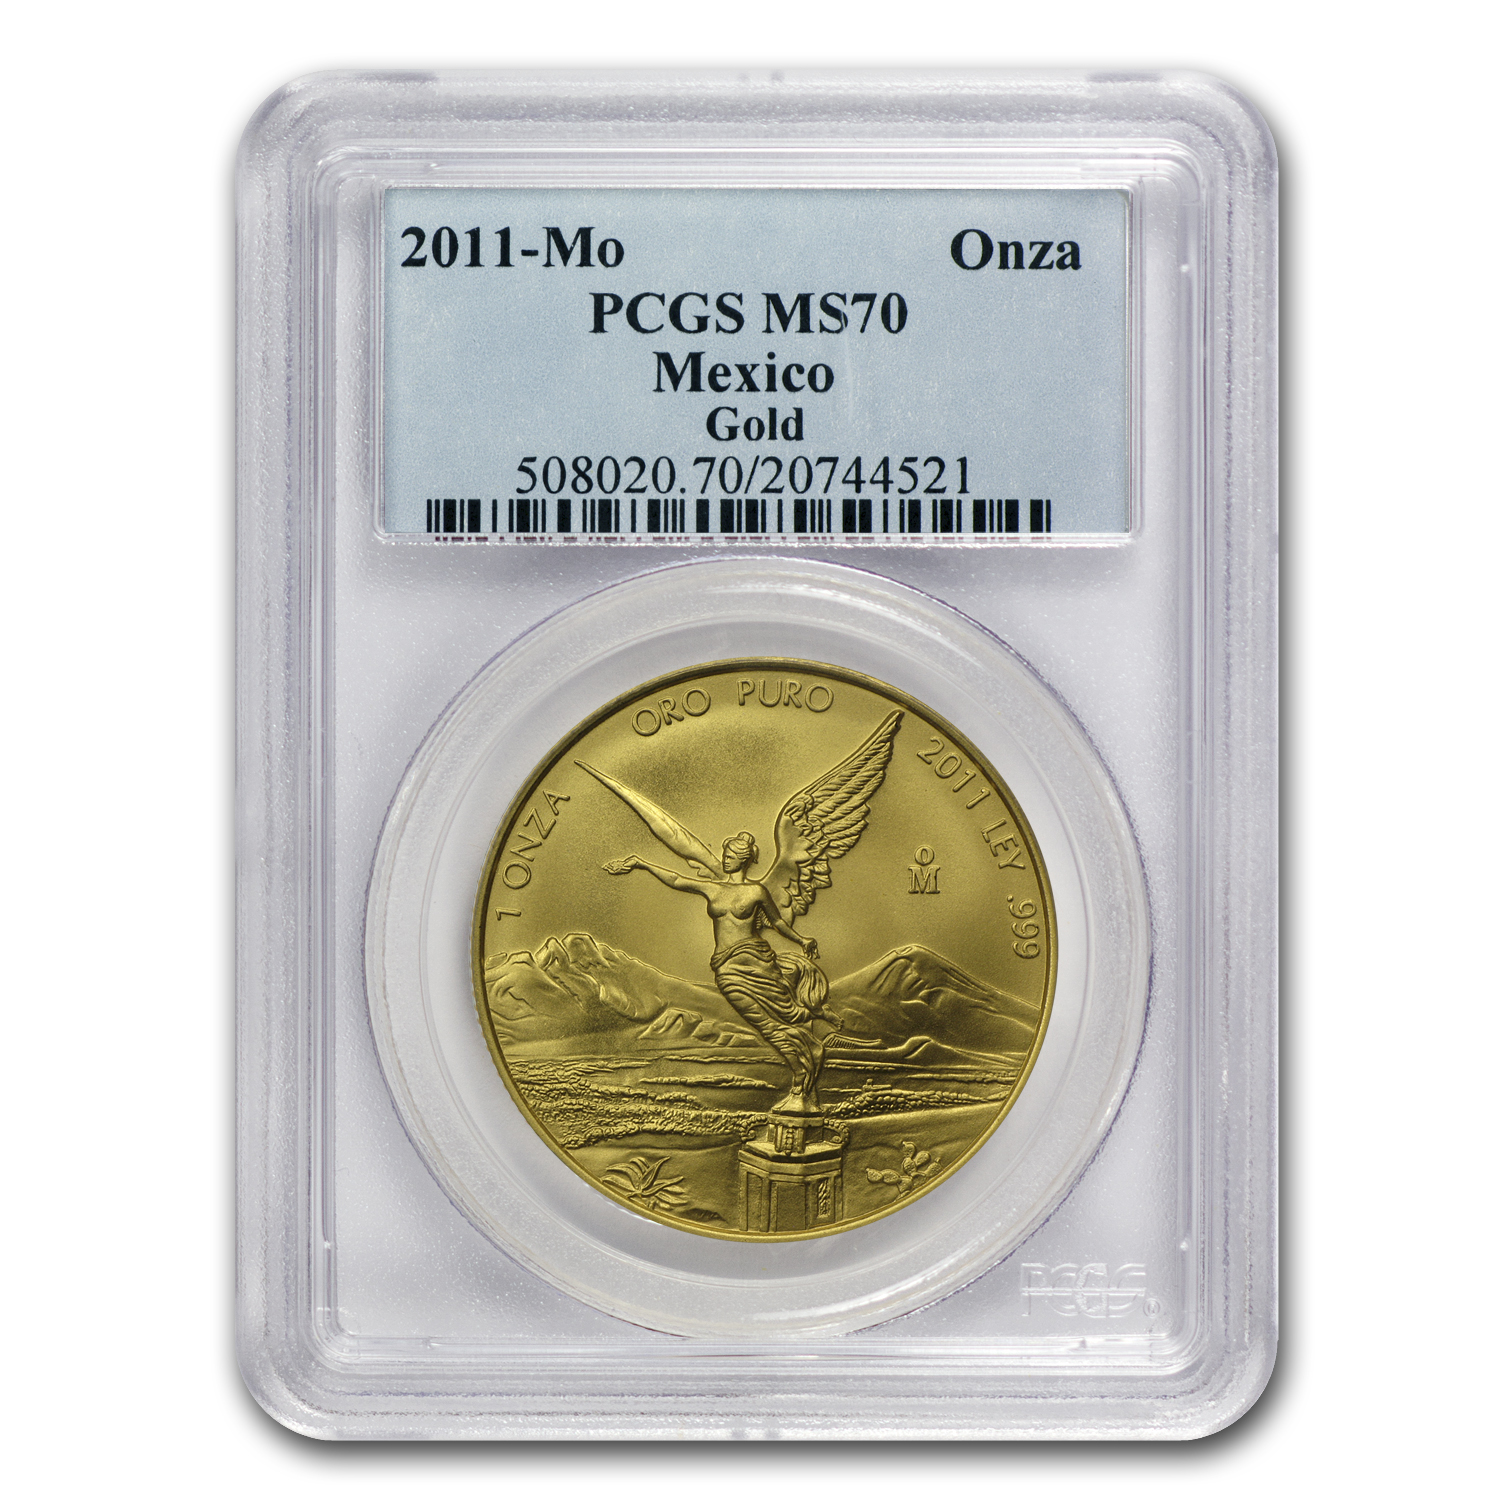 2011 Mexico 1 oz Gold Libertad MS-70 PCGS